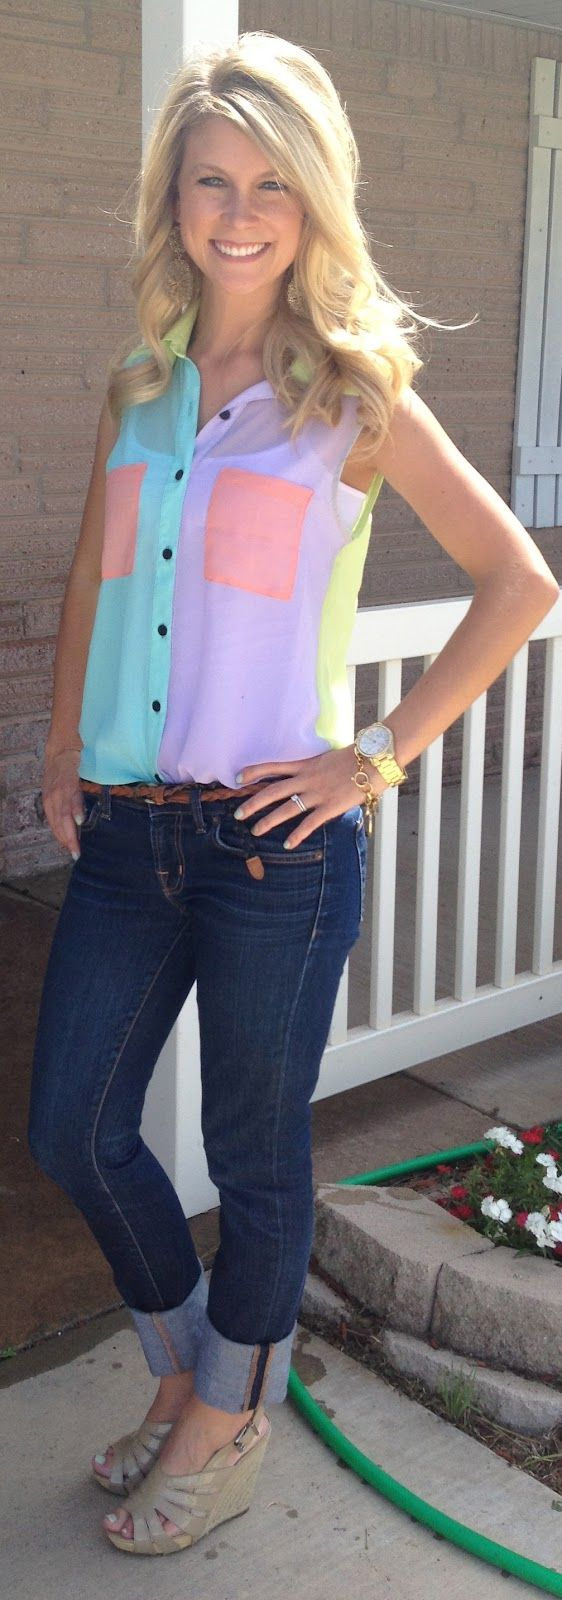 I love this top!: Shoes, Fashion Style, Shirts, Clothing, Street Style, Cute Outfits, Pastel Colors, Hair, Colors Blocks